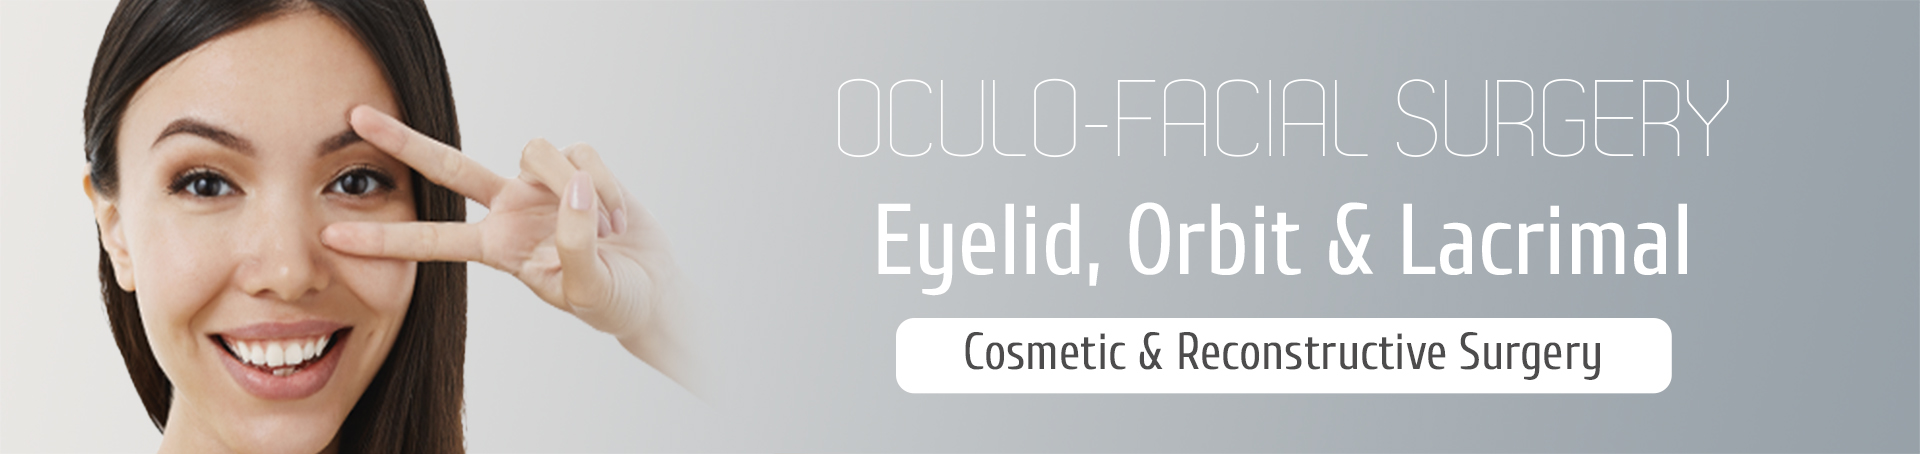 Cosmetic and Reconstructive Surgery of the eyelids, orbits and tear ducts